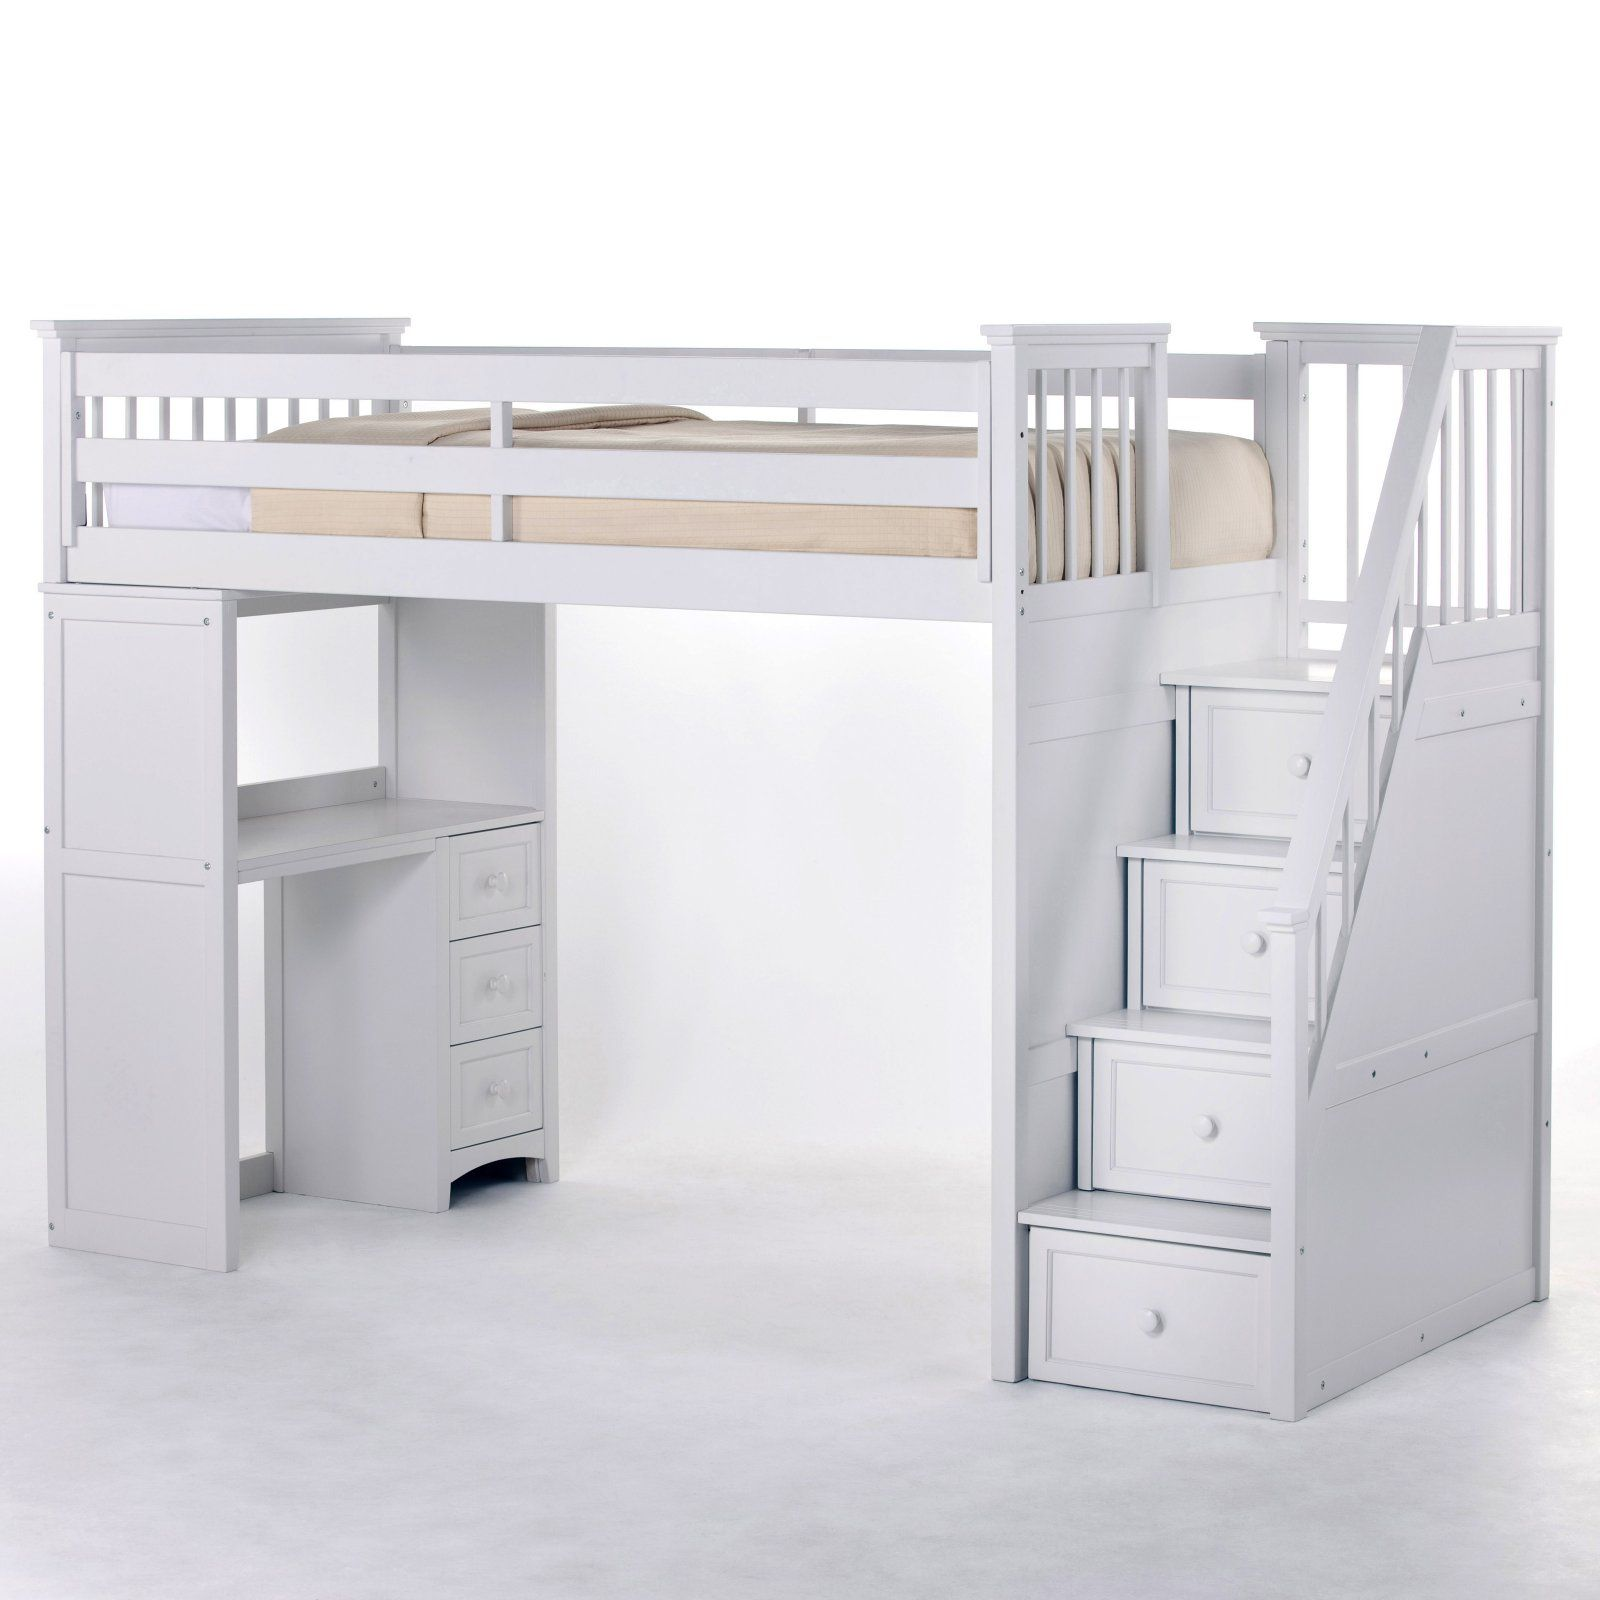 Jay furniture stair loft bed in cherry with desk kids black finish - Schoolhouse Stairway Loft Bed White Loft Beds At Simply Bunk Beds